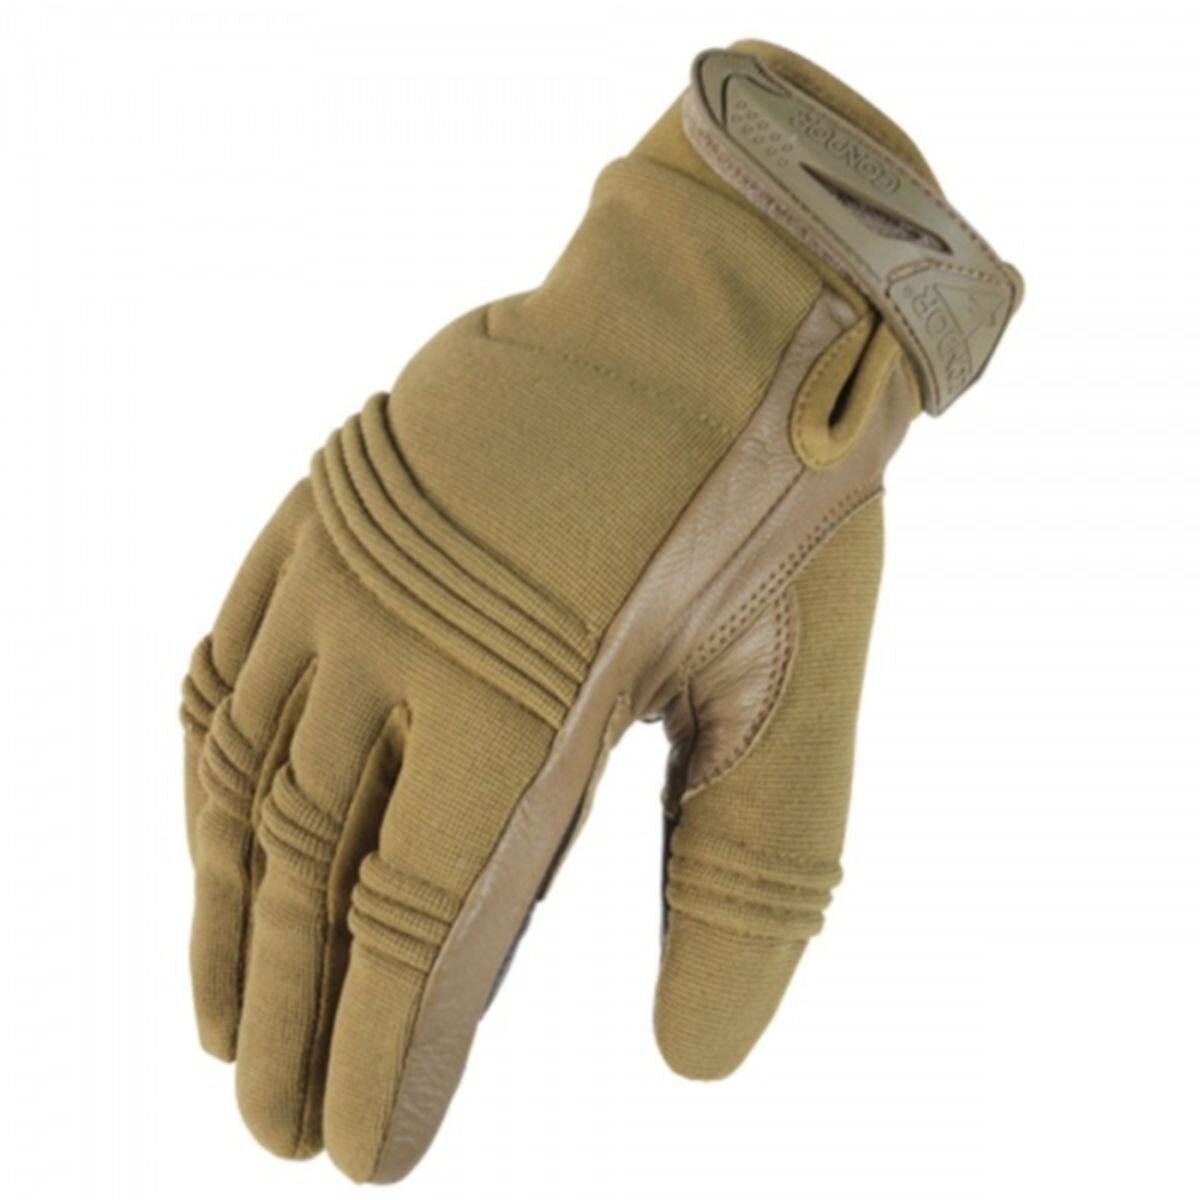 Перчатки Condor Tactician Tactile Gloves Tan M Бежевый (15252-003-M)